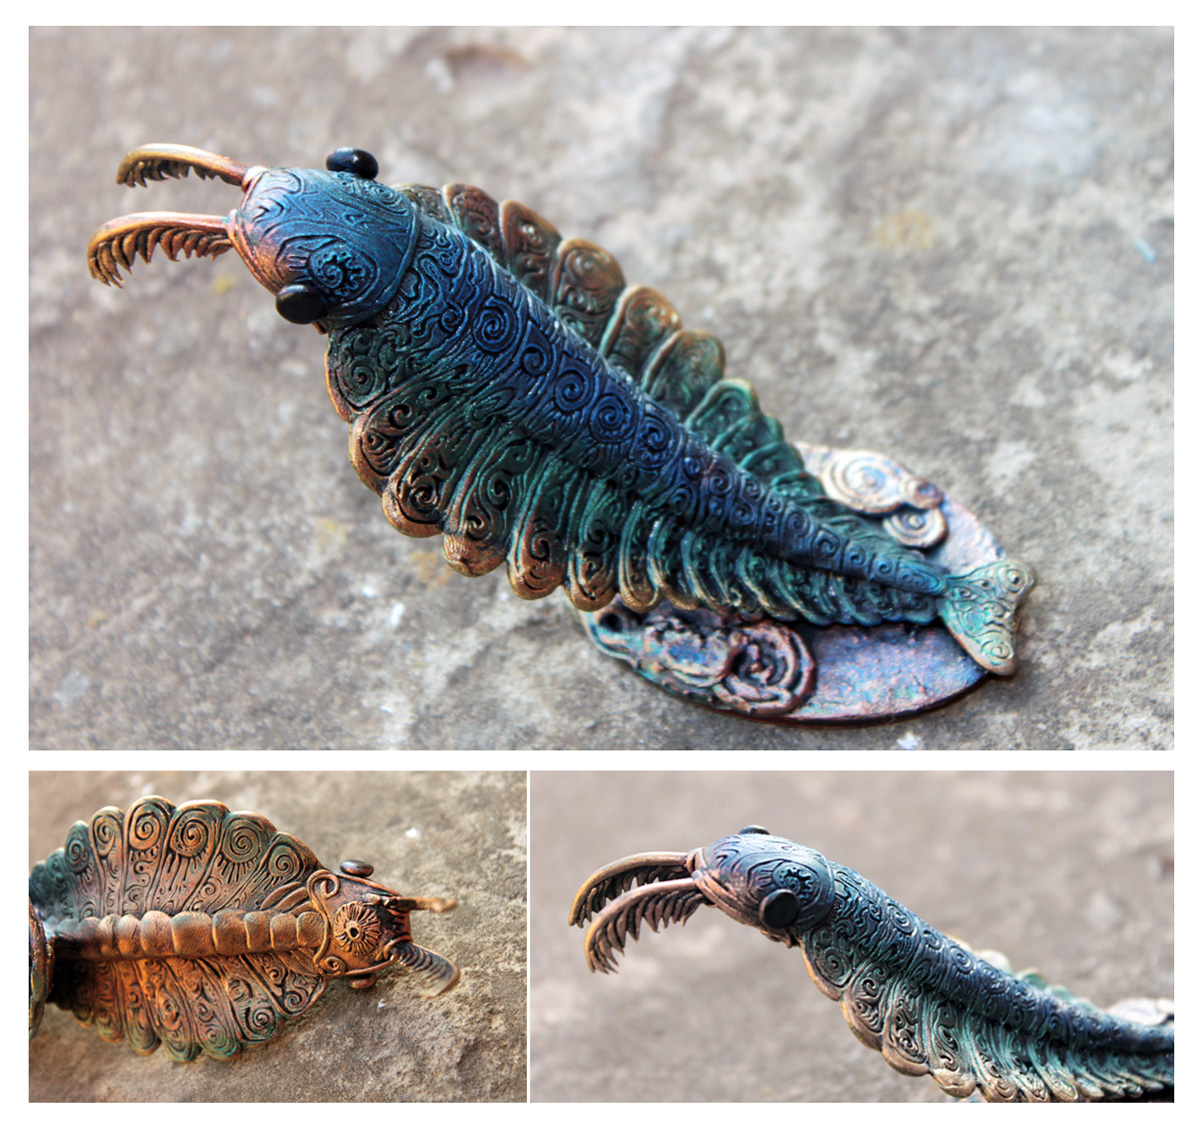 Anomalocaris by hontor